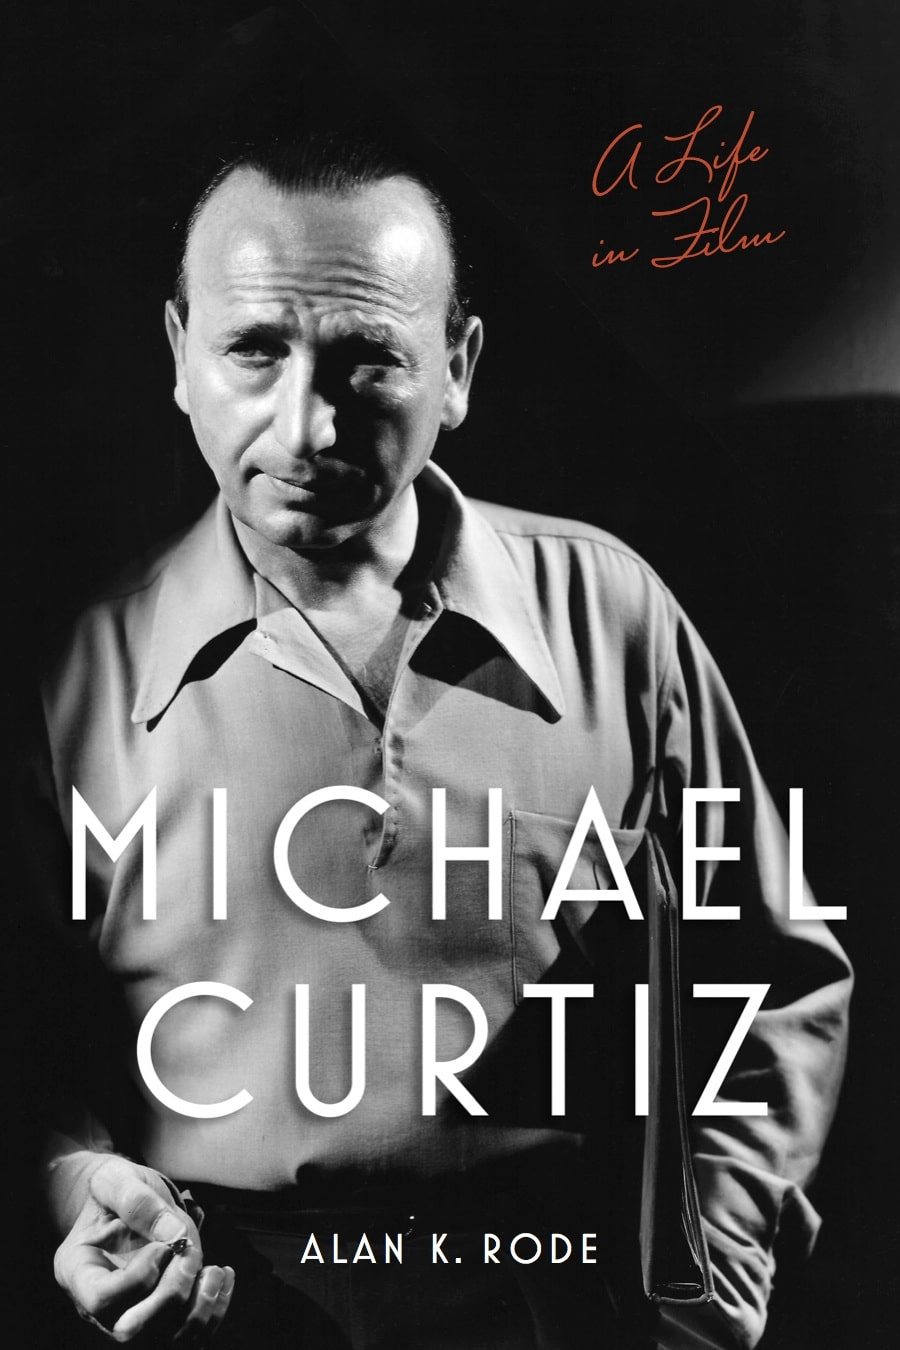 photo of Michael Curtiz on cover of biography Michael Curtiz: A Life in Film